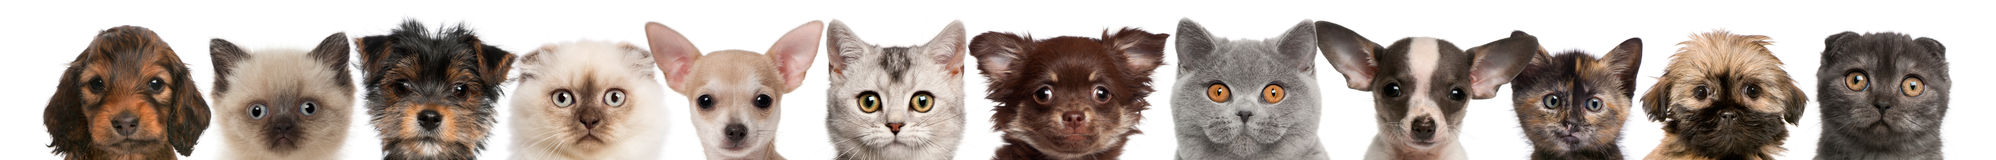 View of puppy and kitten heads Royalty Free Stock Photography